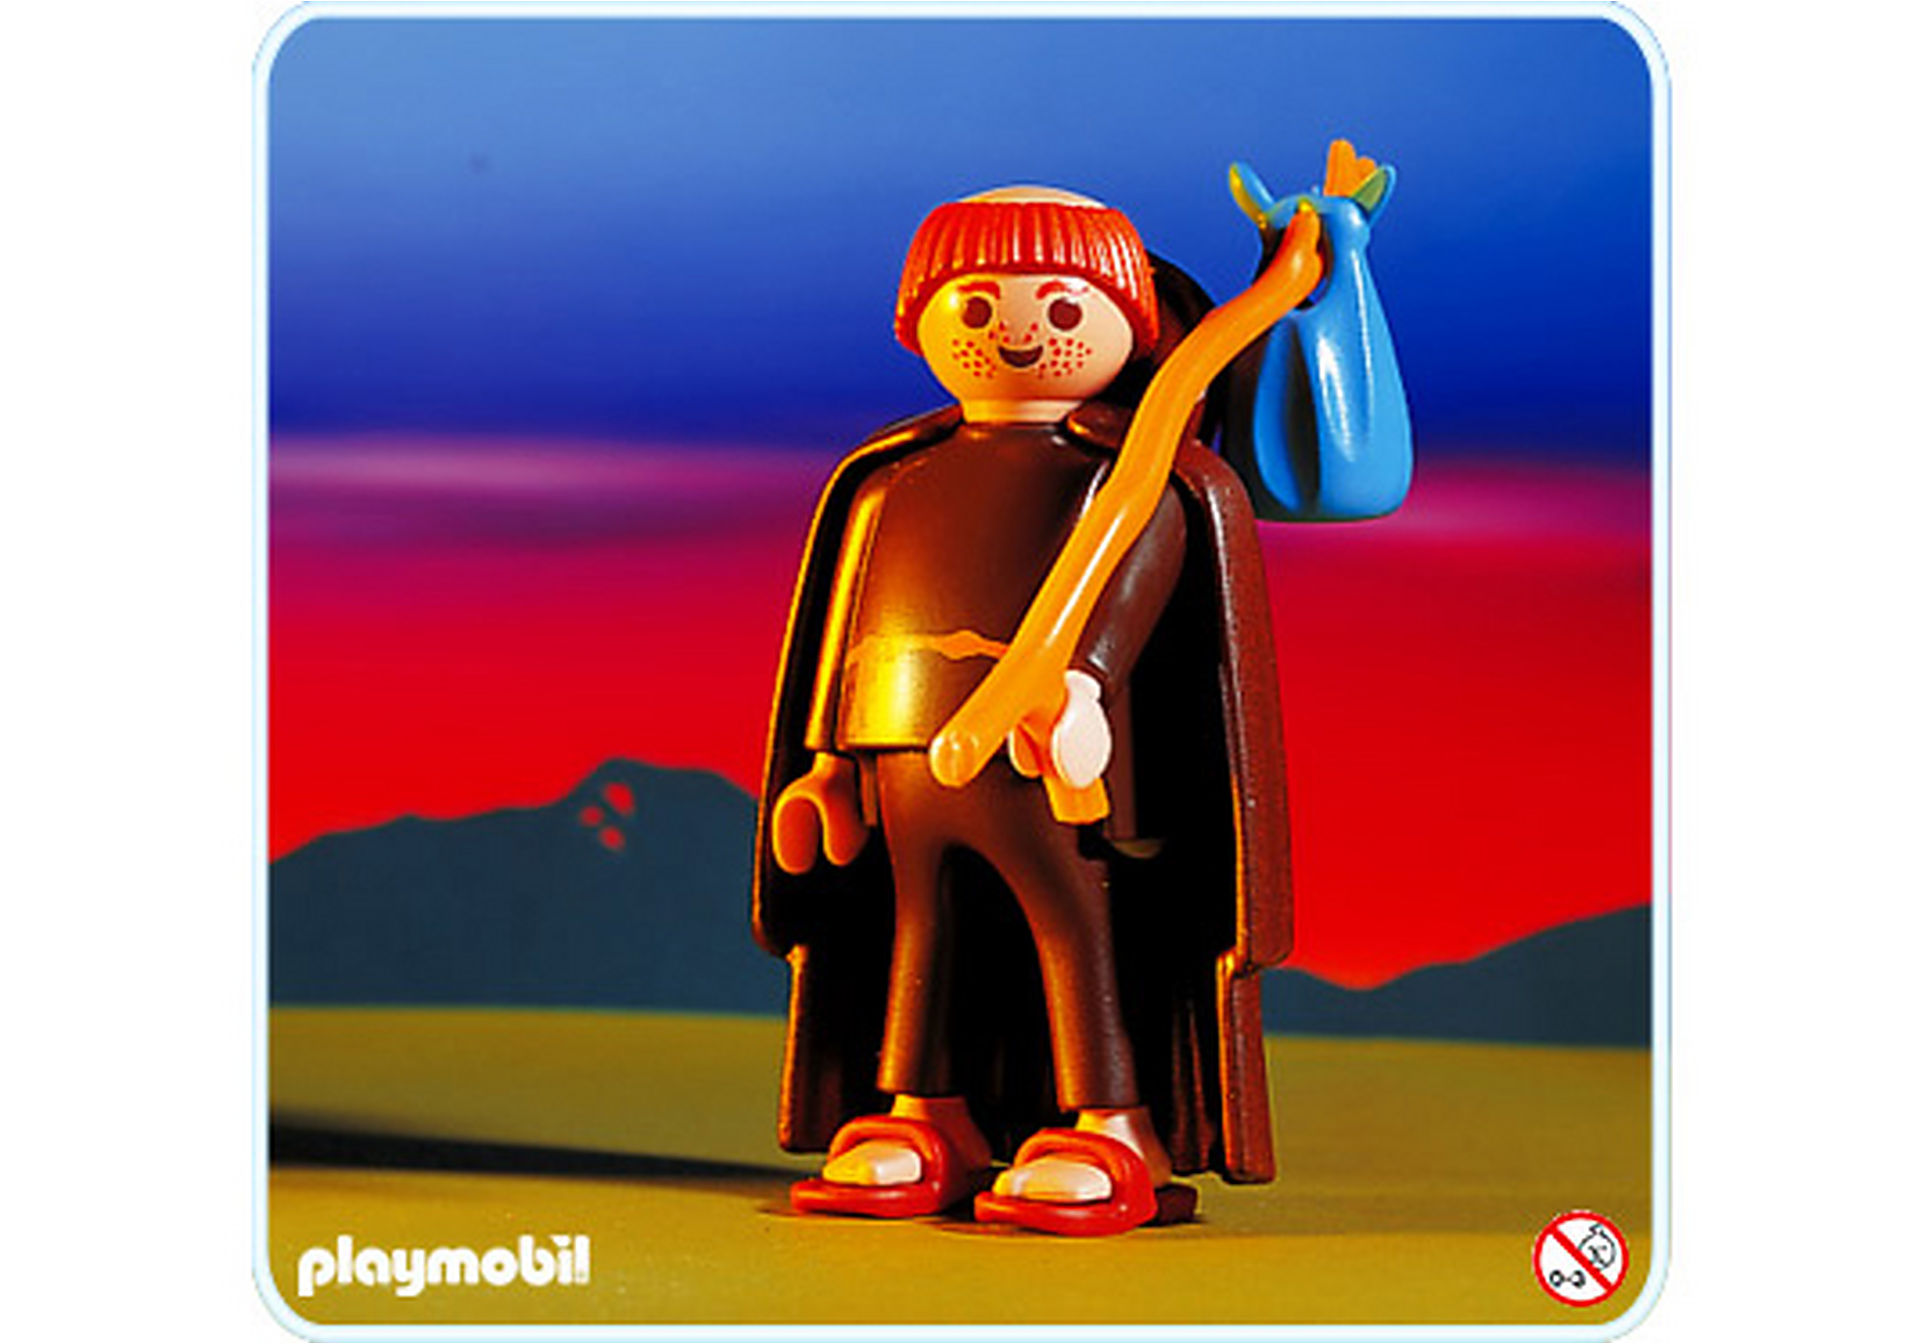 http://media.playmobil.com/i/playmobil/3631-A_product_detail/Bettelmönch